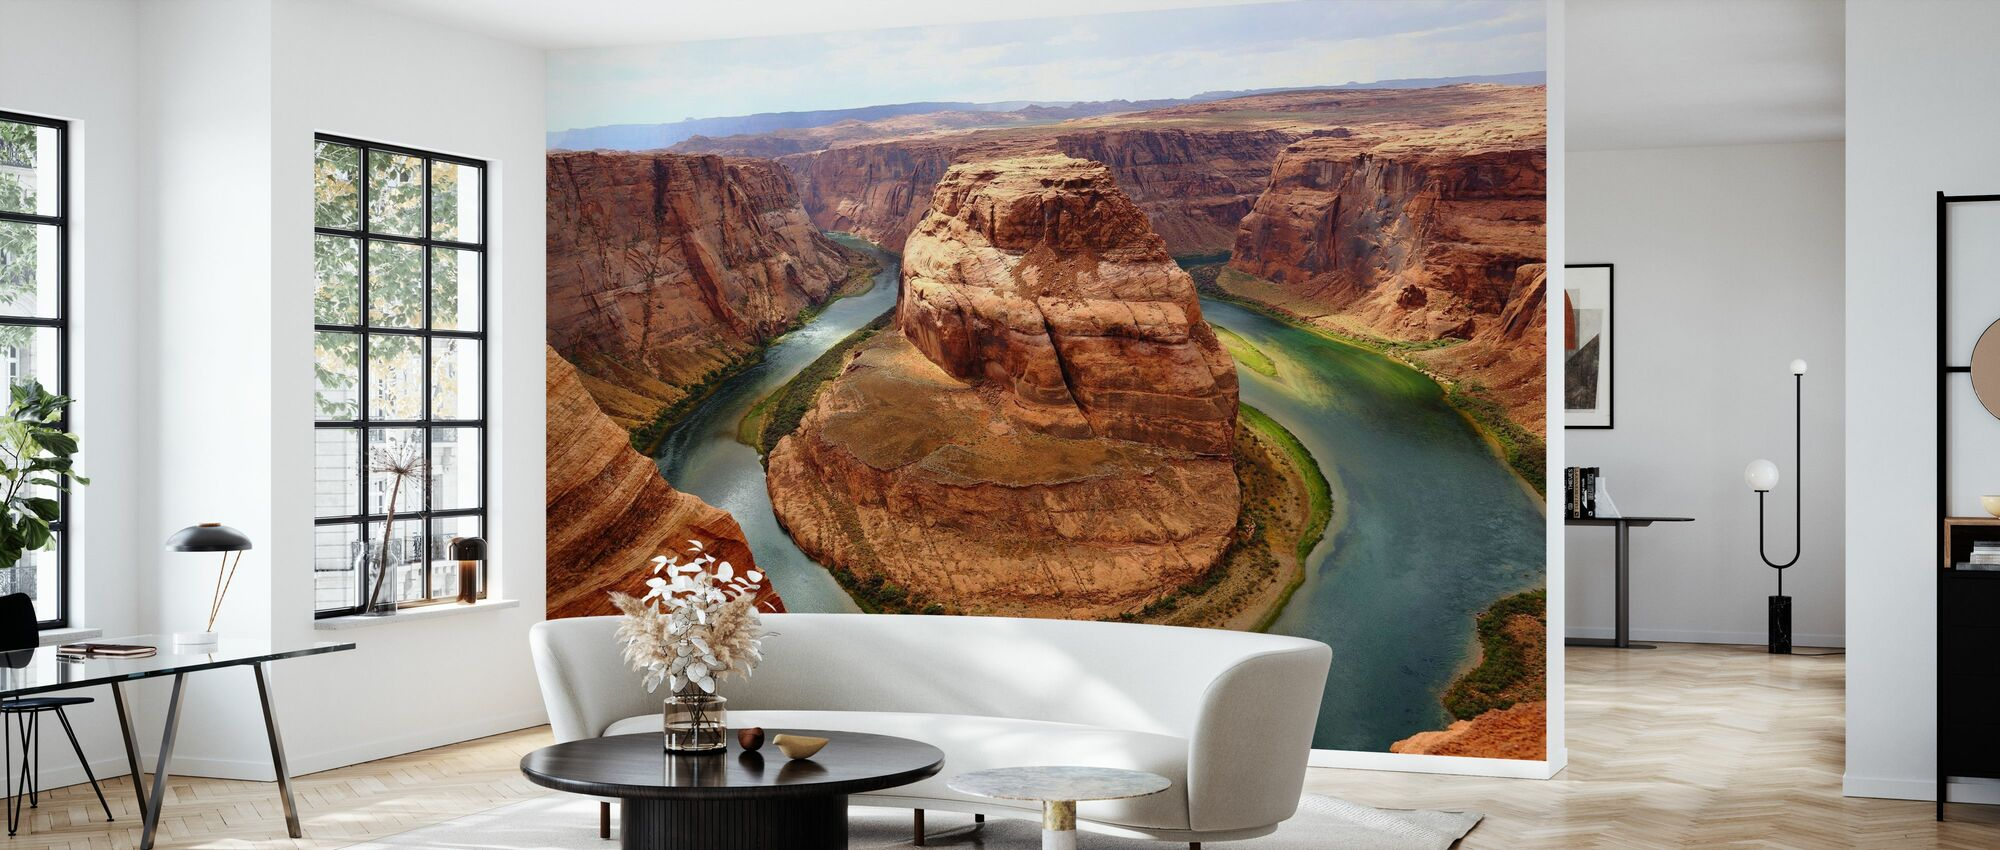 Horseshoe Bend - Wallpaper - Living Room